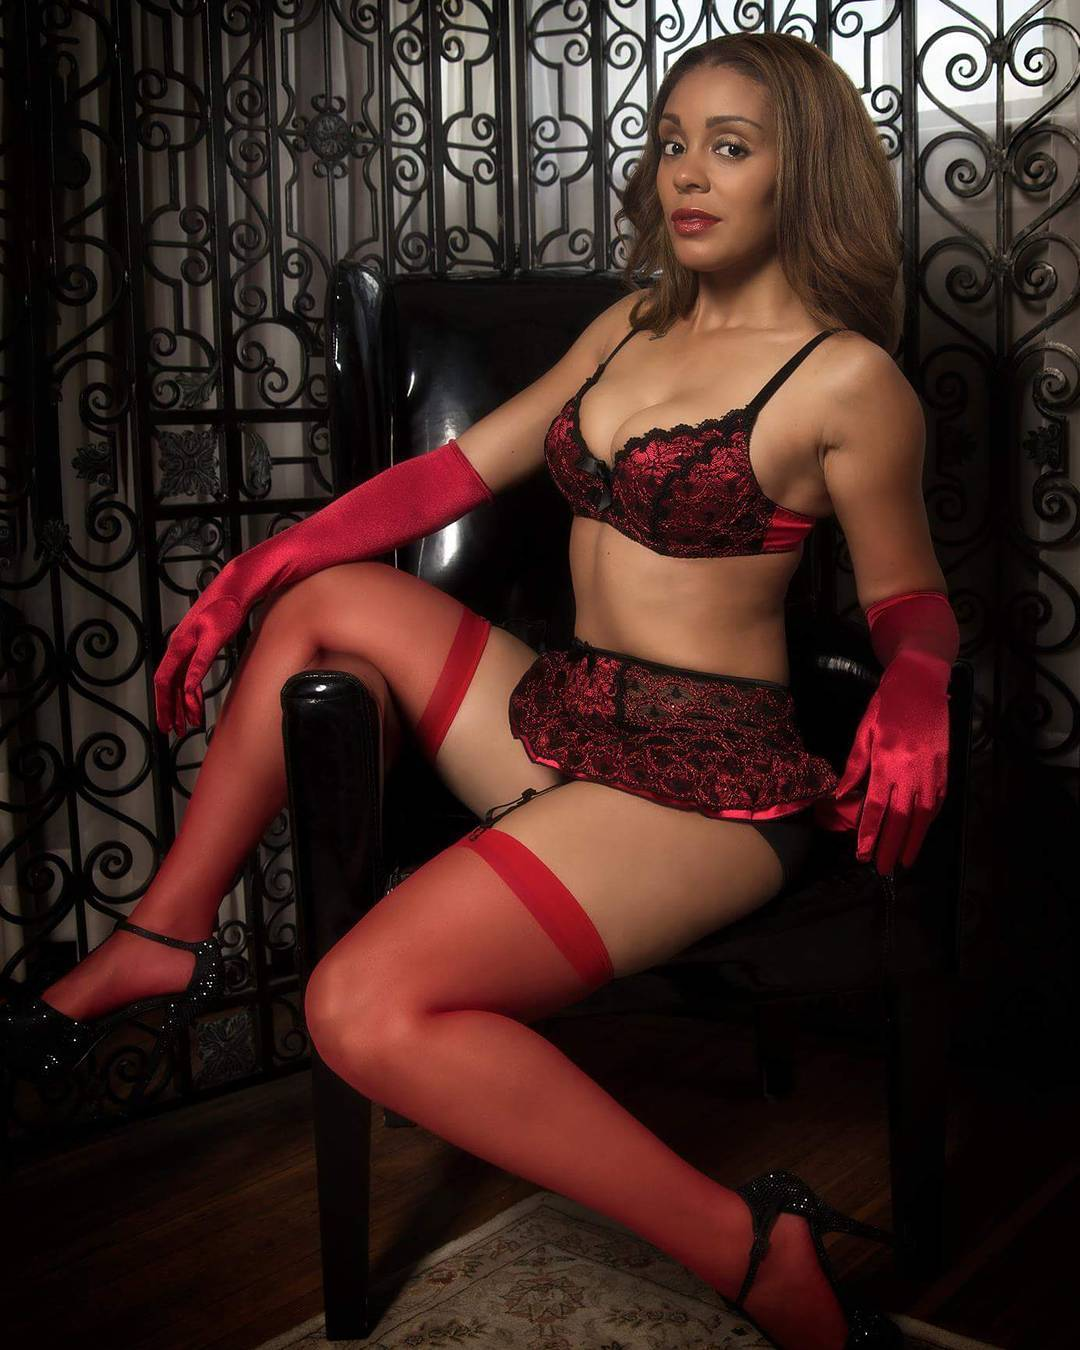 Model wearing red bra and garter skirt set with rid thigh high stockings available from VaVaVooom's selection of lingerie and apparel.